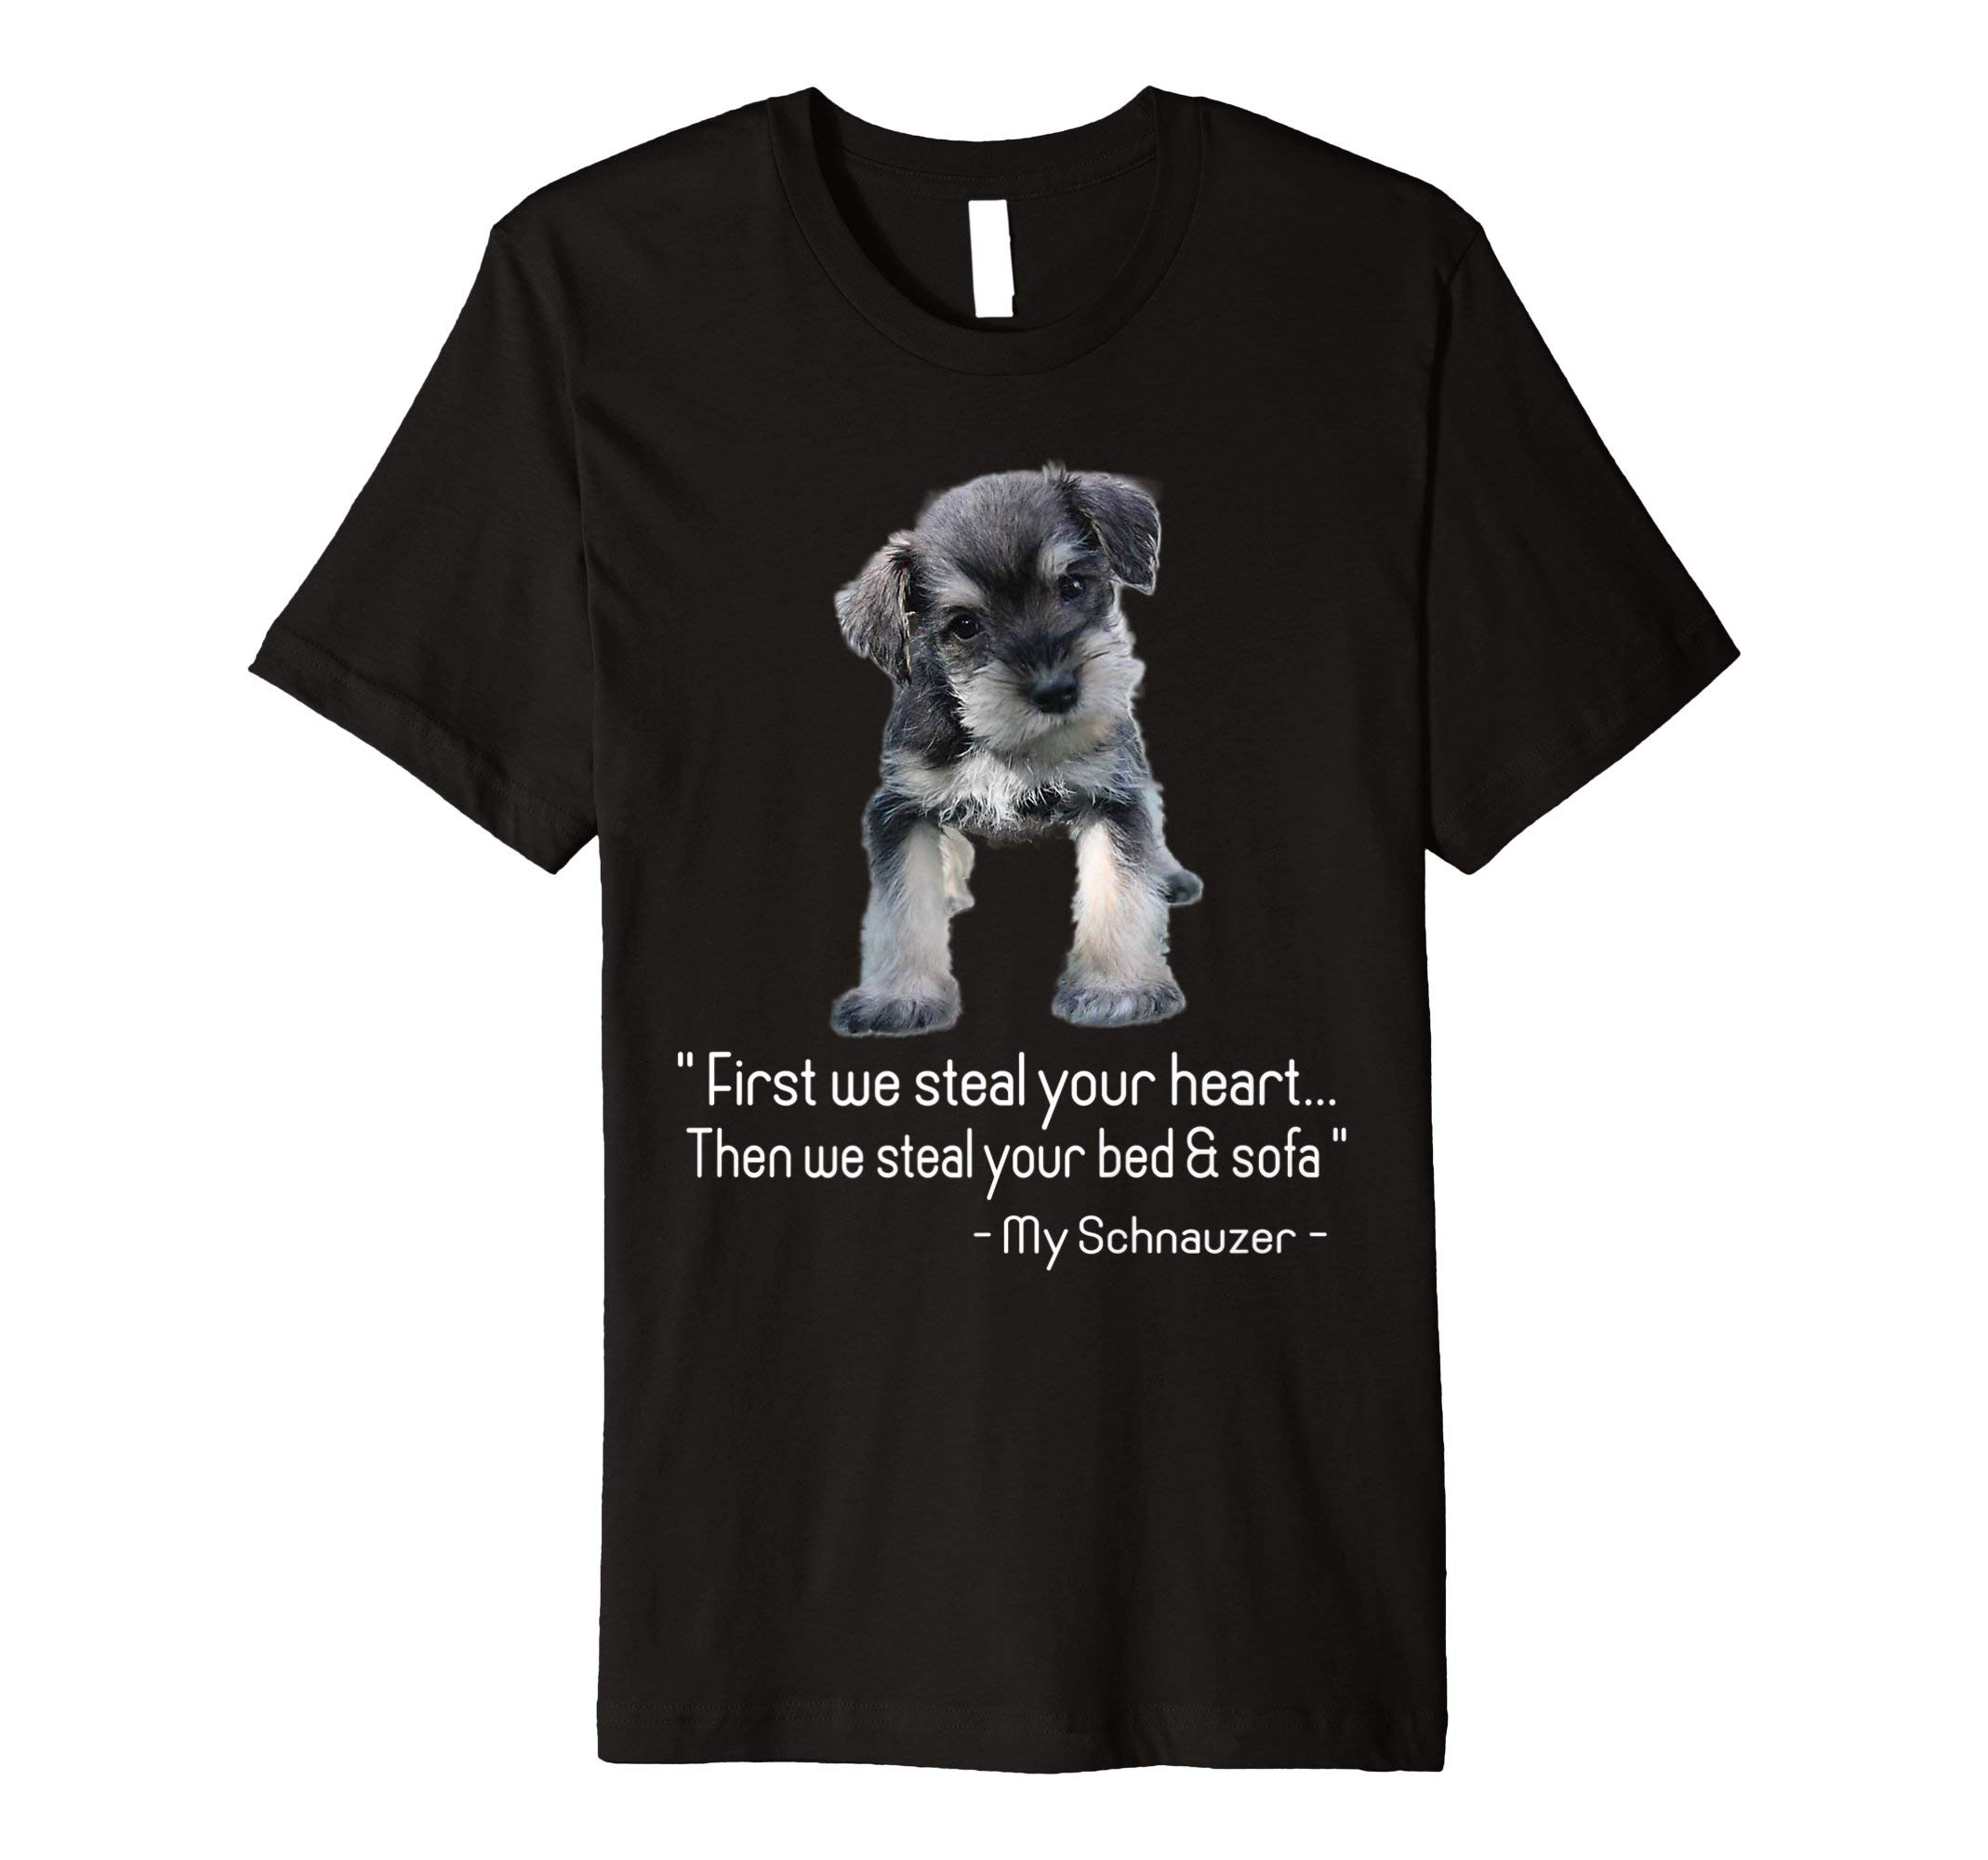 Cute Schnauzer Dog Quotes Funny dog T Shirt